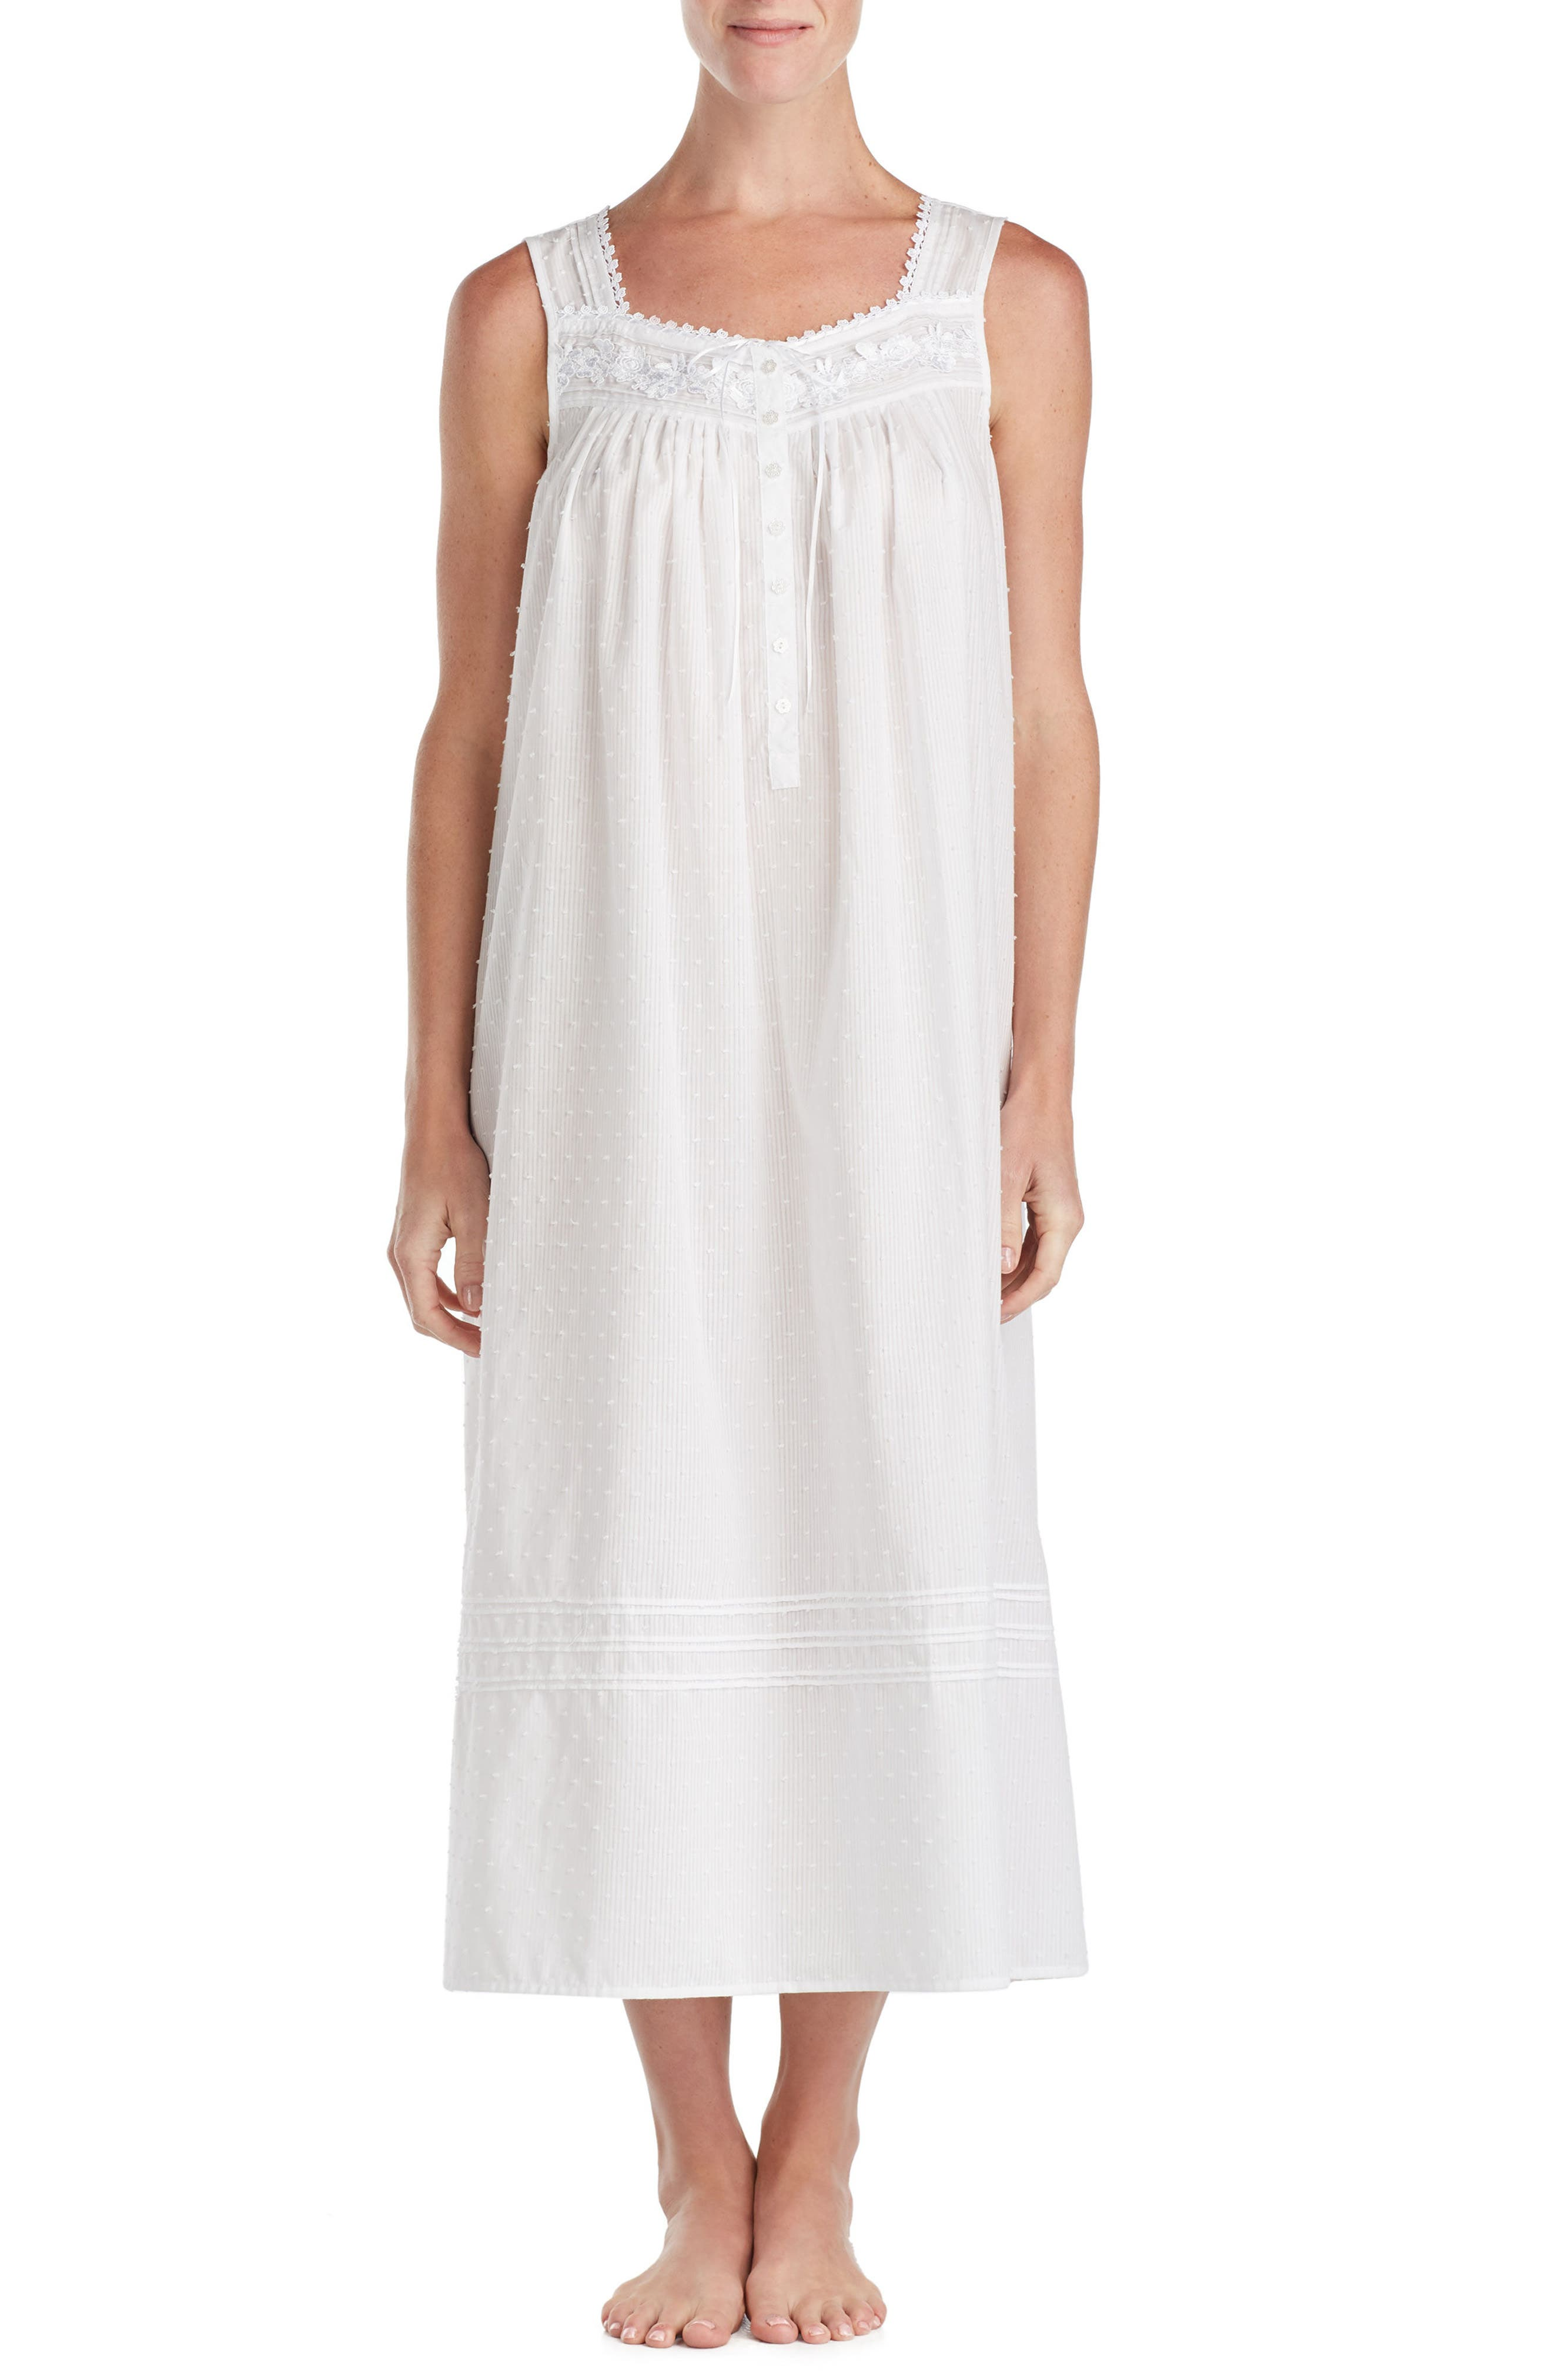 Swiss Dot Nightgown,                         Main,                         color, White